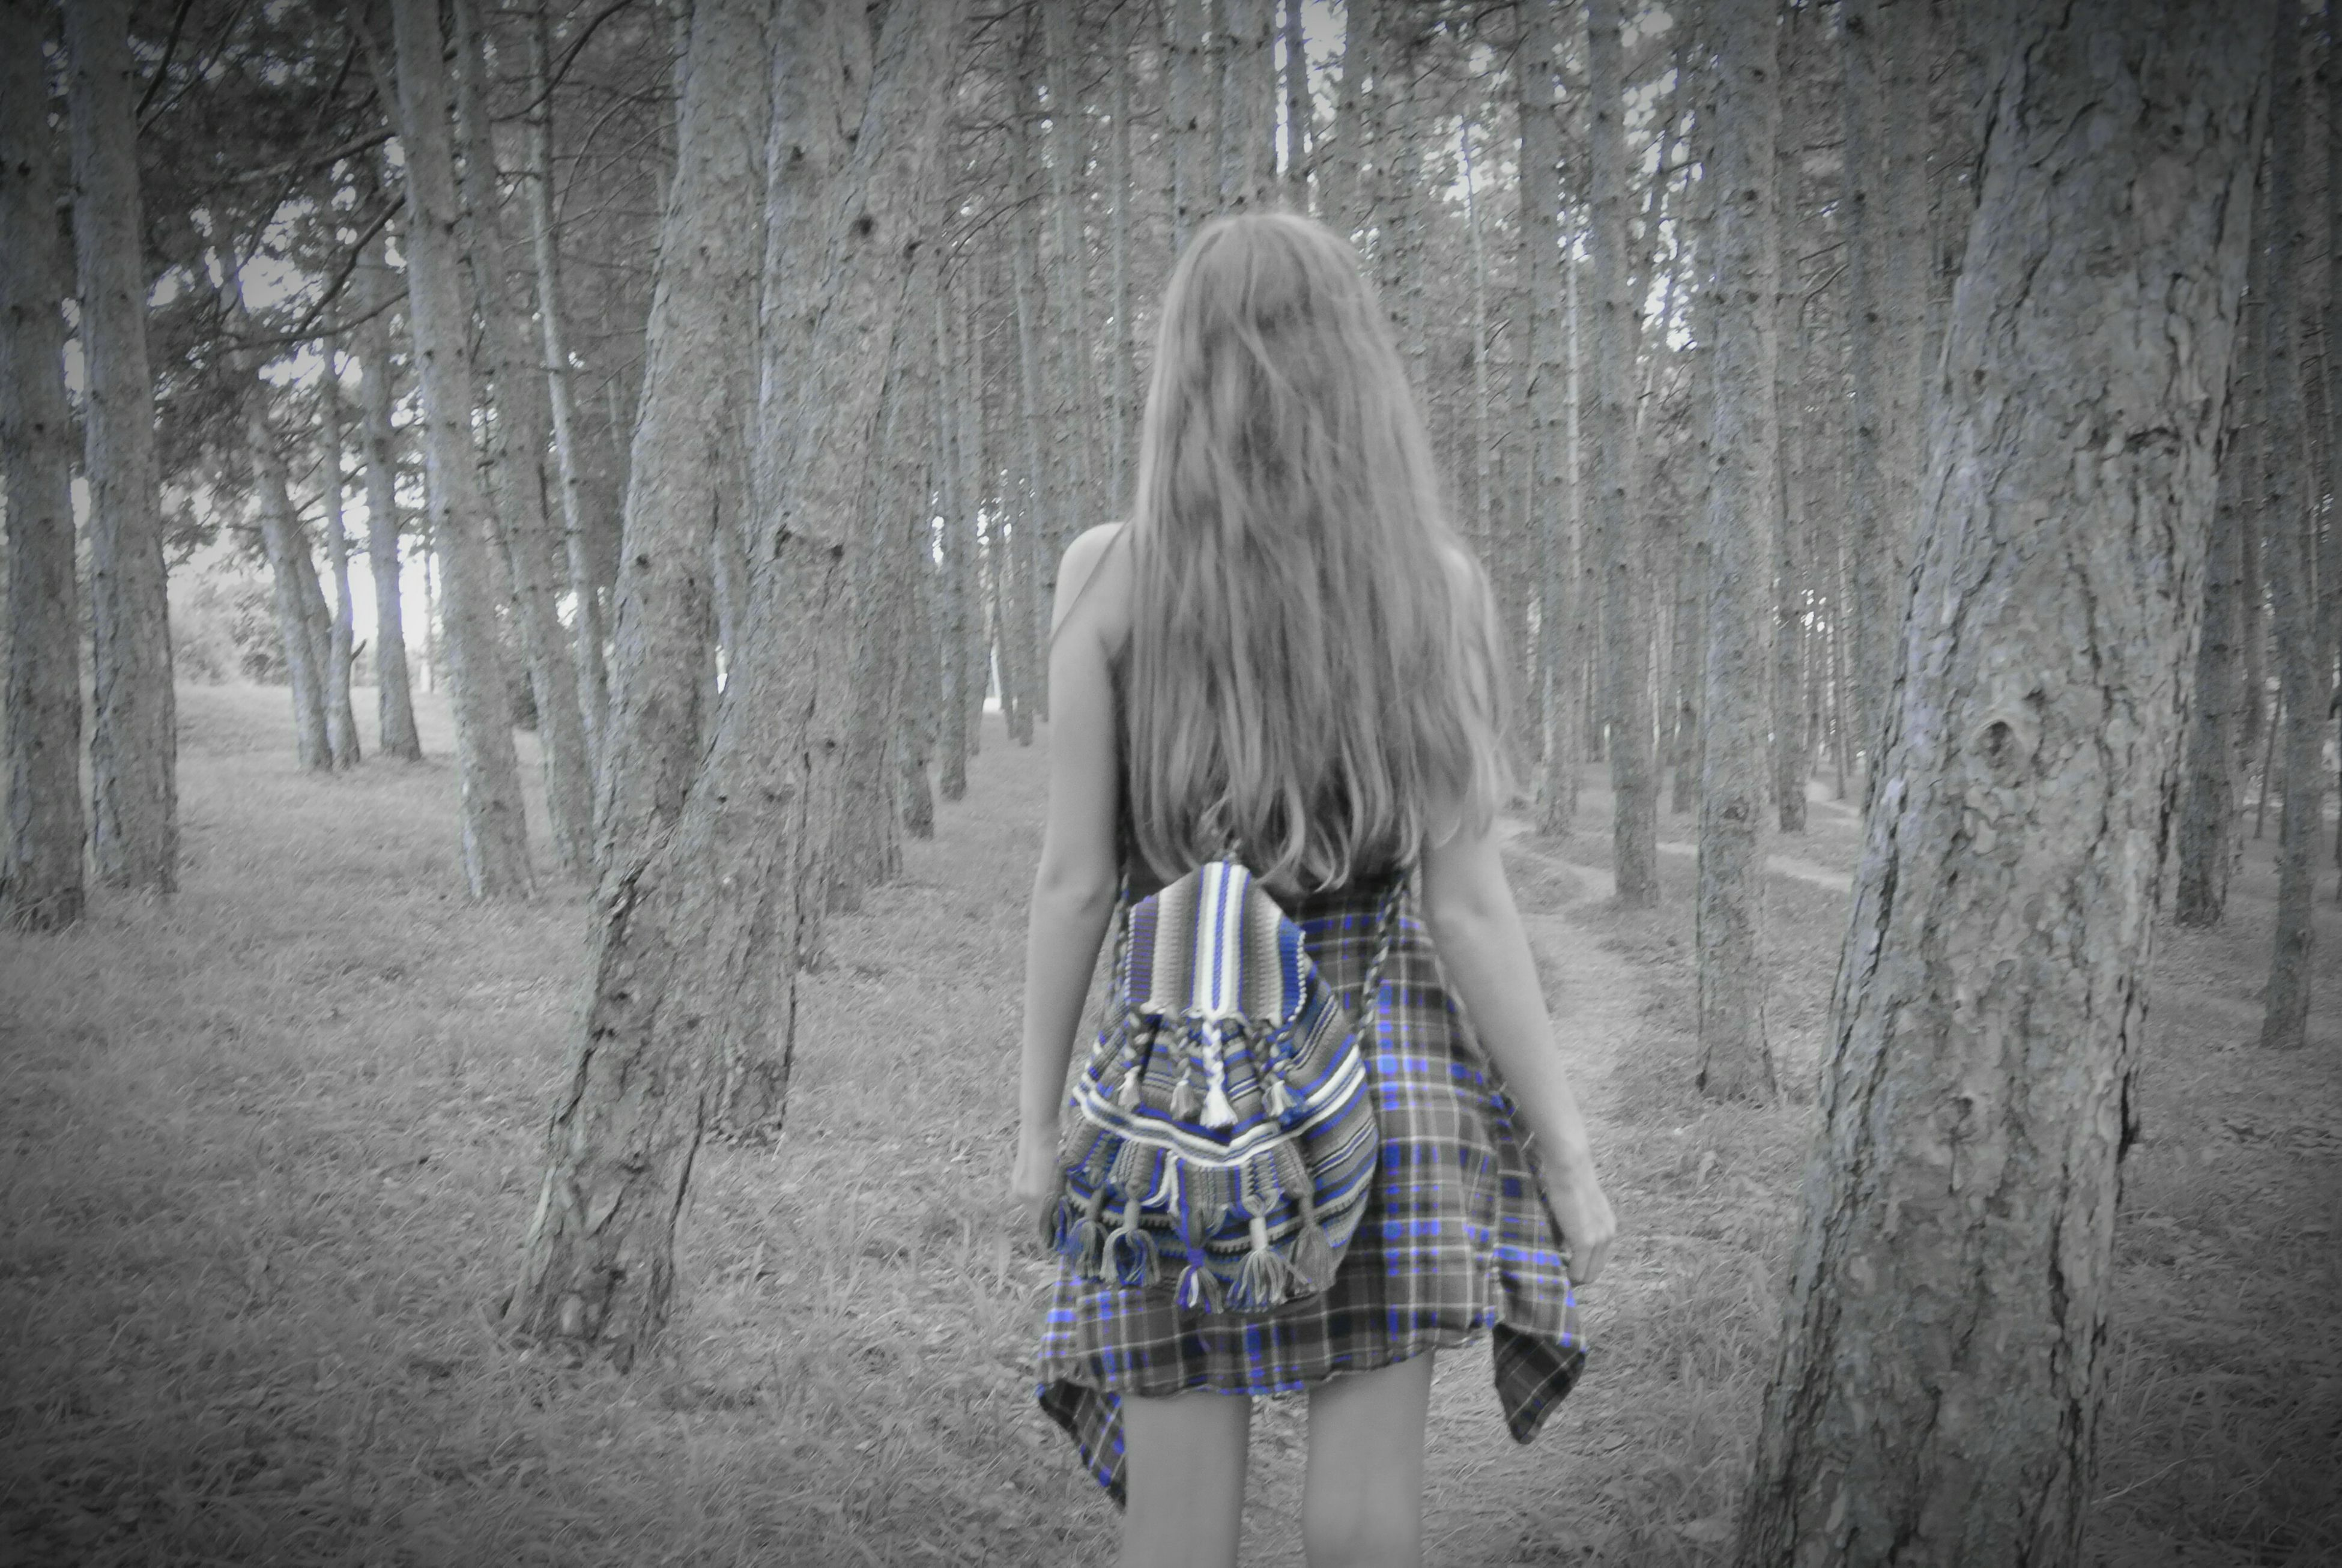 long hair, person, standing, rear view, tree, blonde hair, casual clothing, blond hair, straight hair, tranquility, remote, day, solitude, embracing, non-urban scene, nature, getting away from it all, tranquil scene